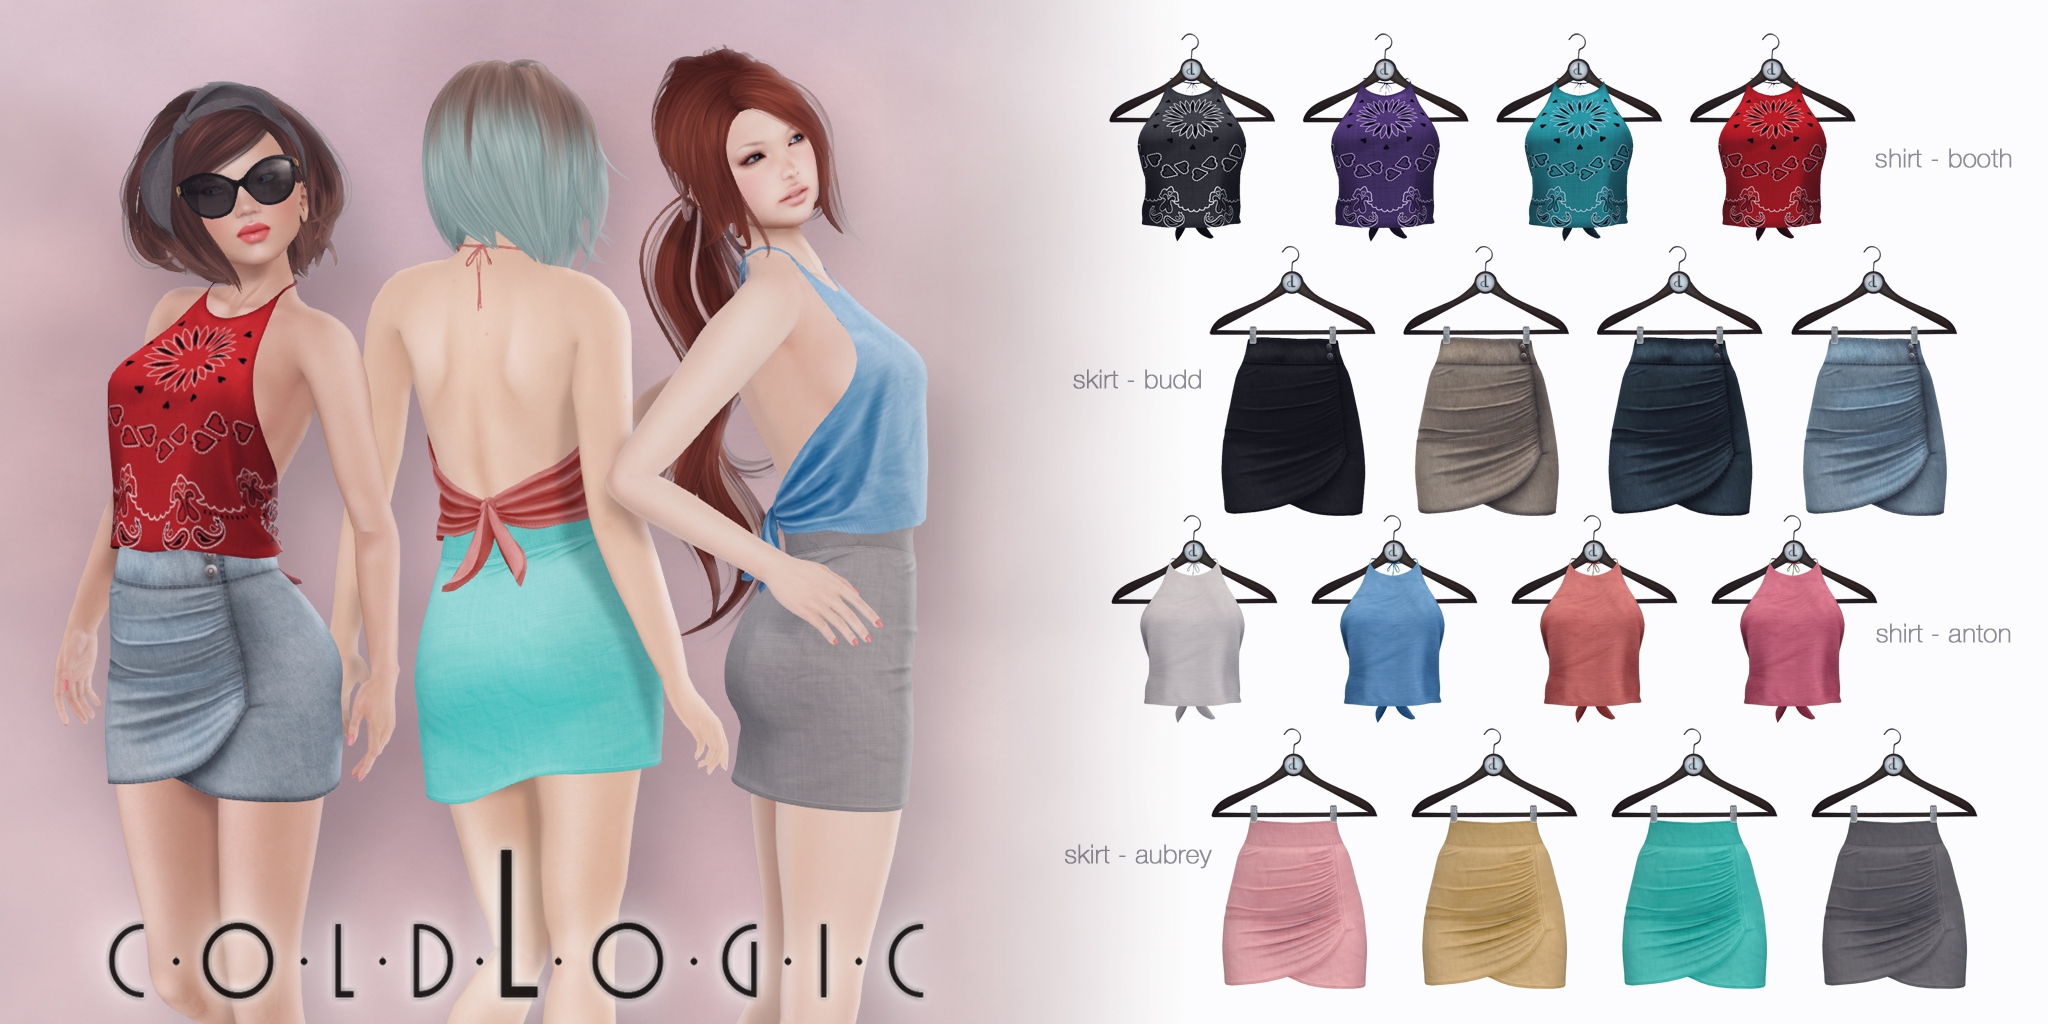 coldLogic - halter tops & skirts